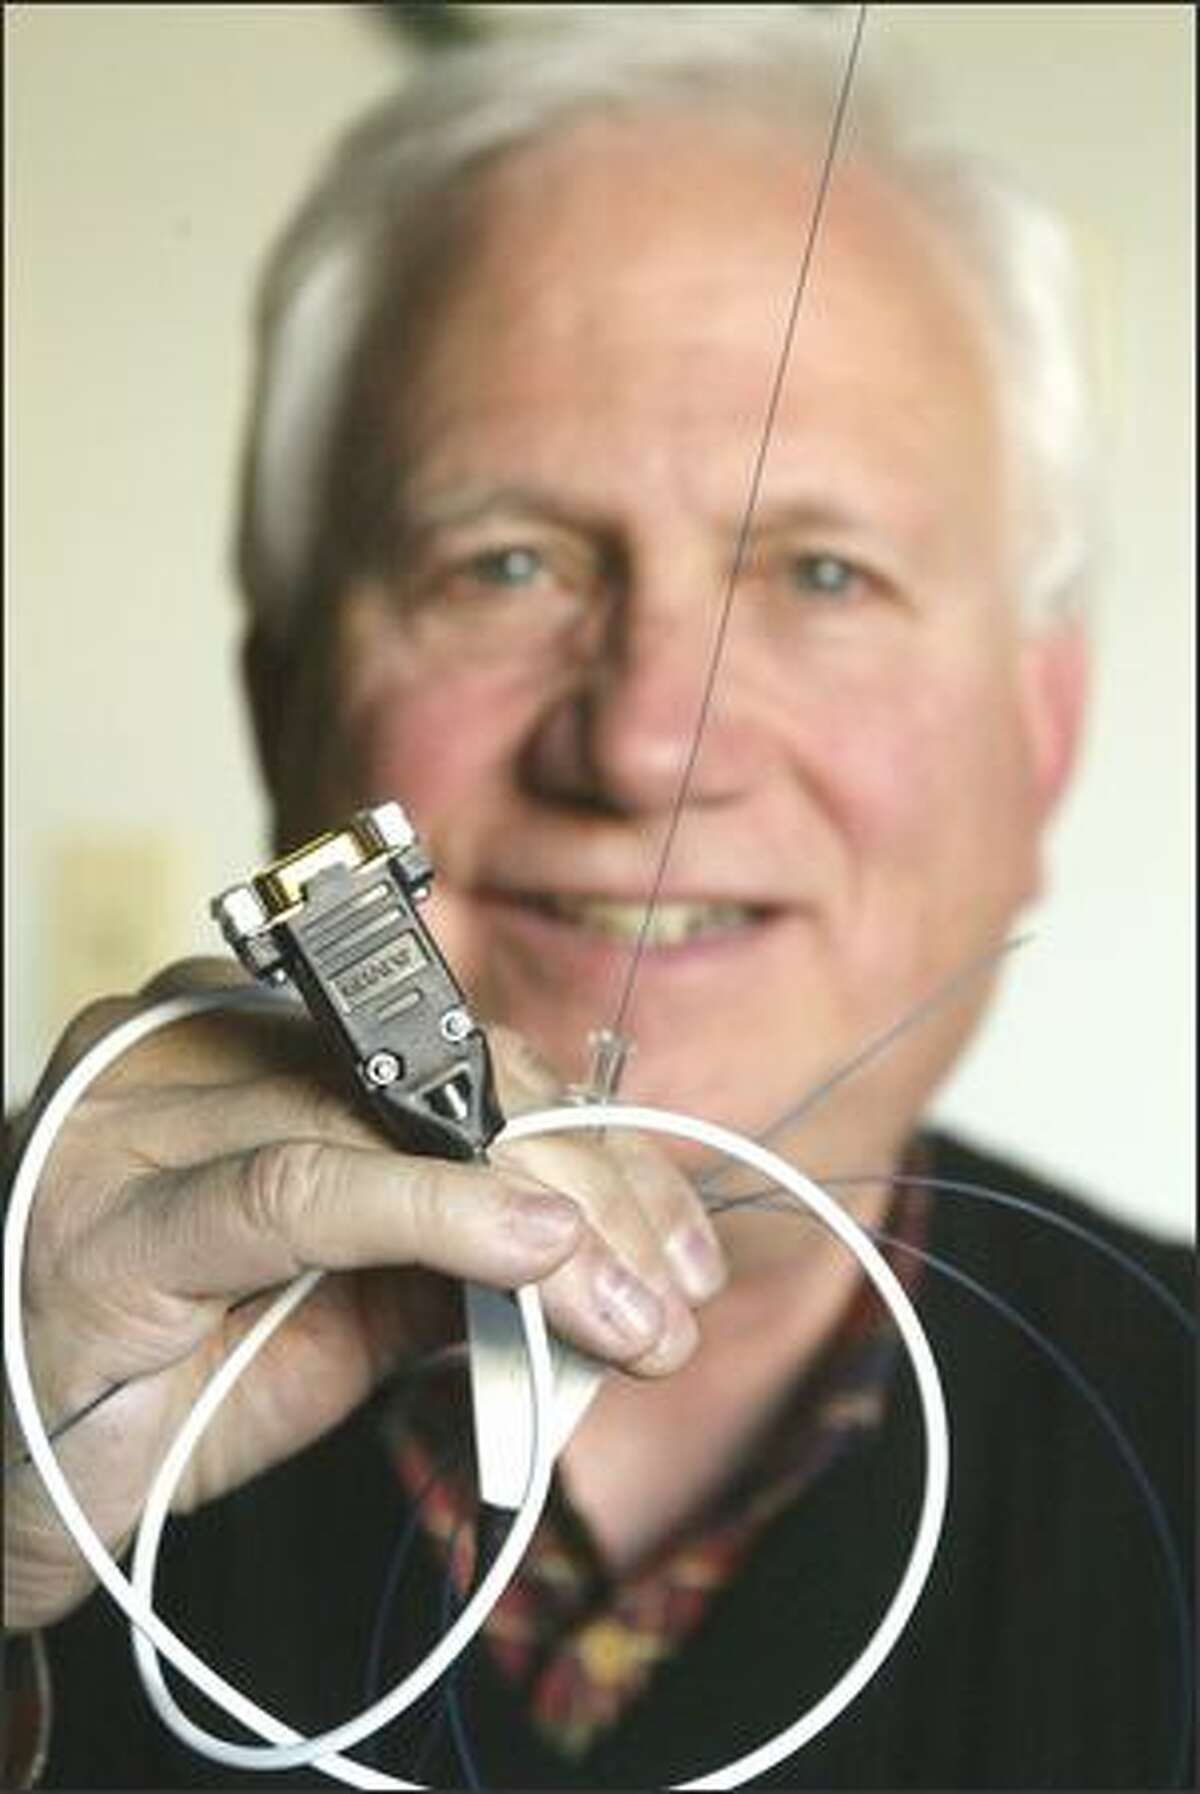 Ekos co-founder Douglas Hansmann holds an ultrasound catheter that helps doctors quickly dissolve blood clots. As part of its ramp-up, the company plans to double its 50-person staff in the next 18 months.